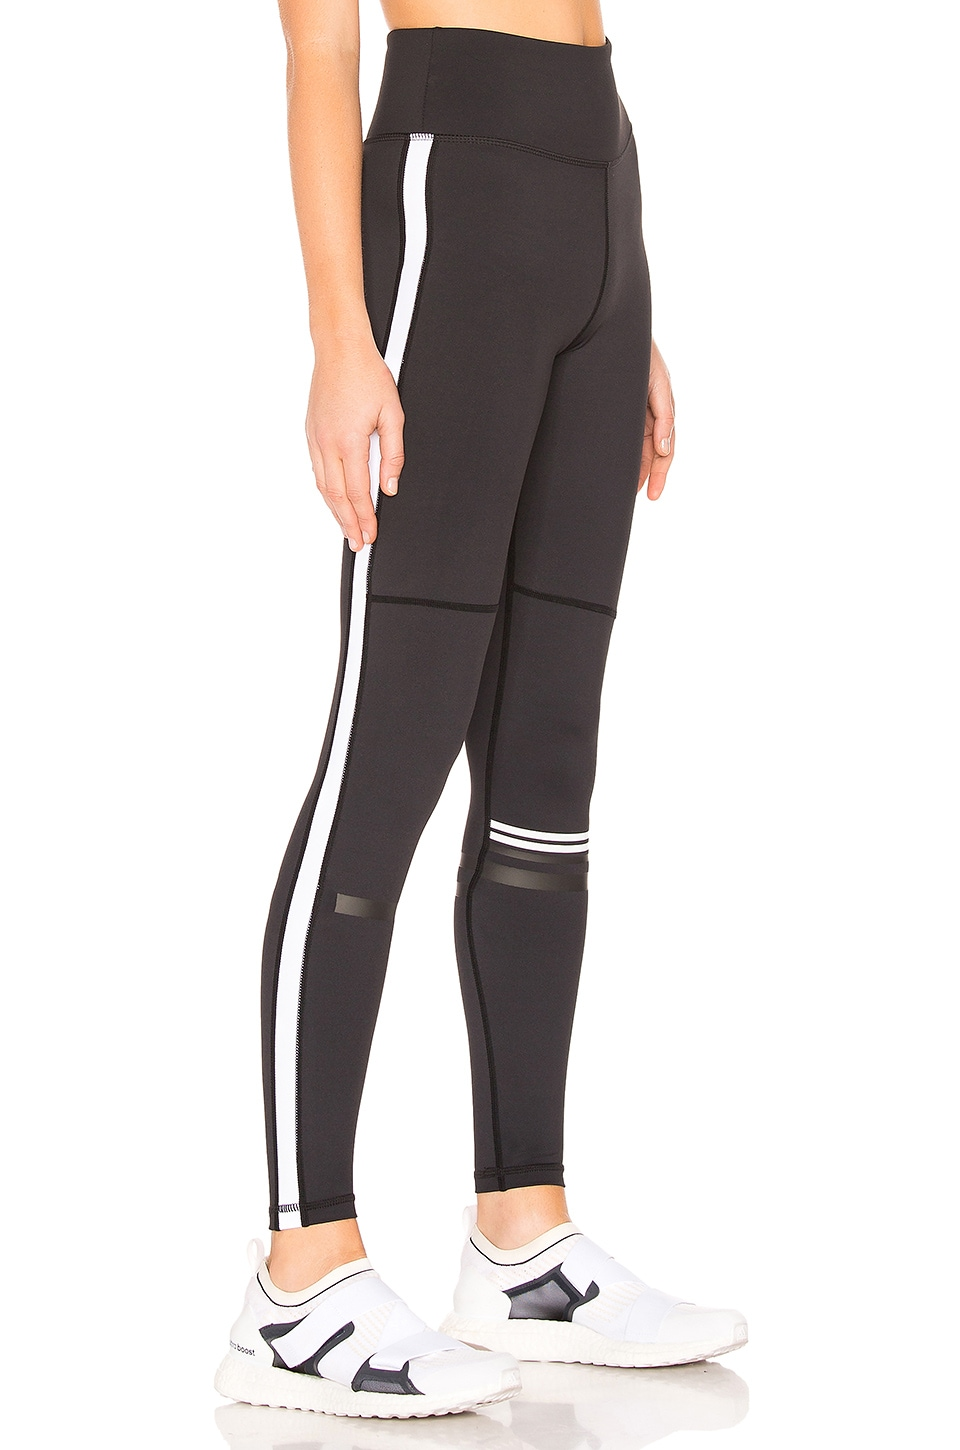 LILYBOD Dakota Legging in Black